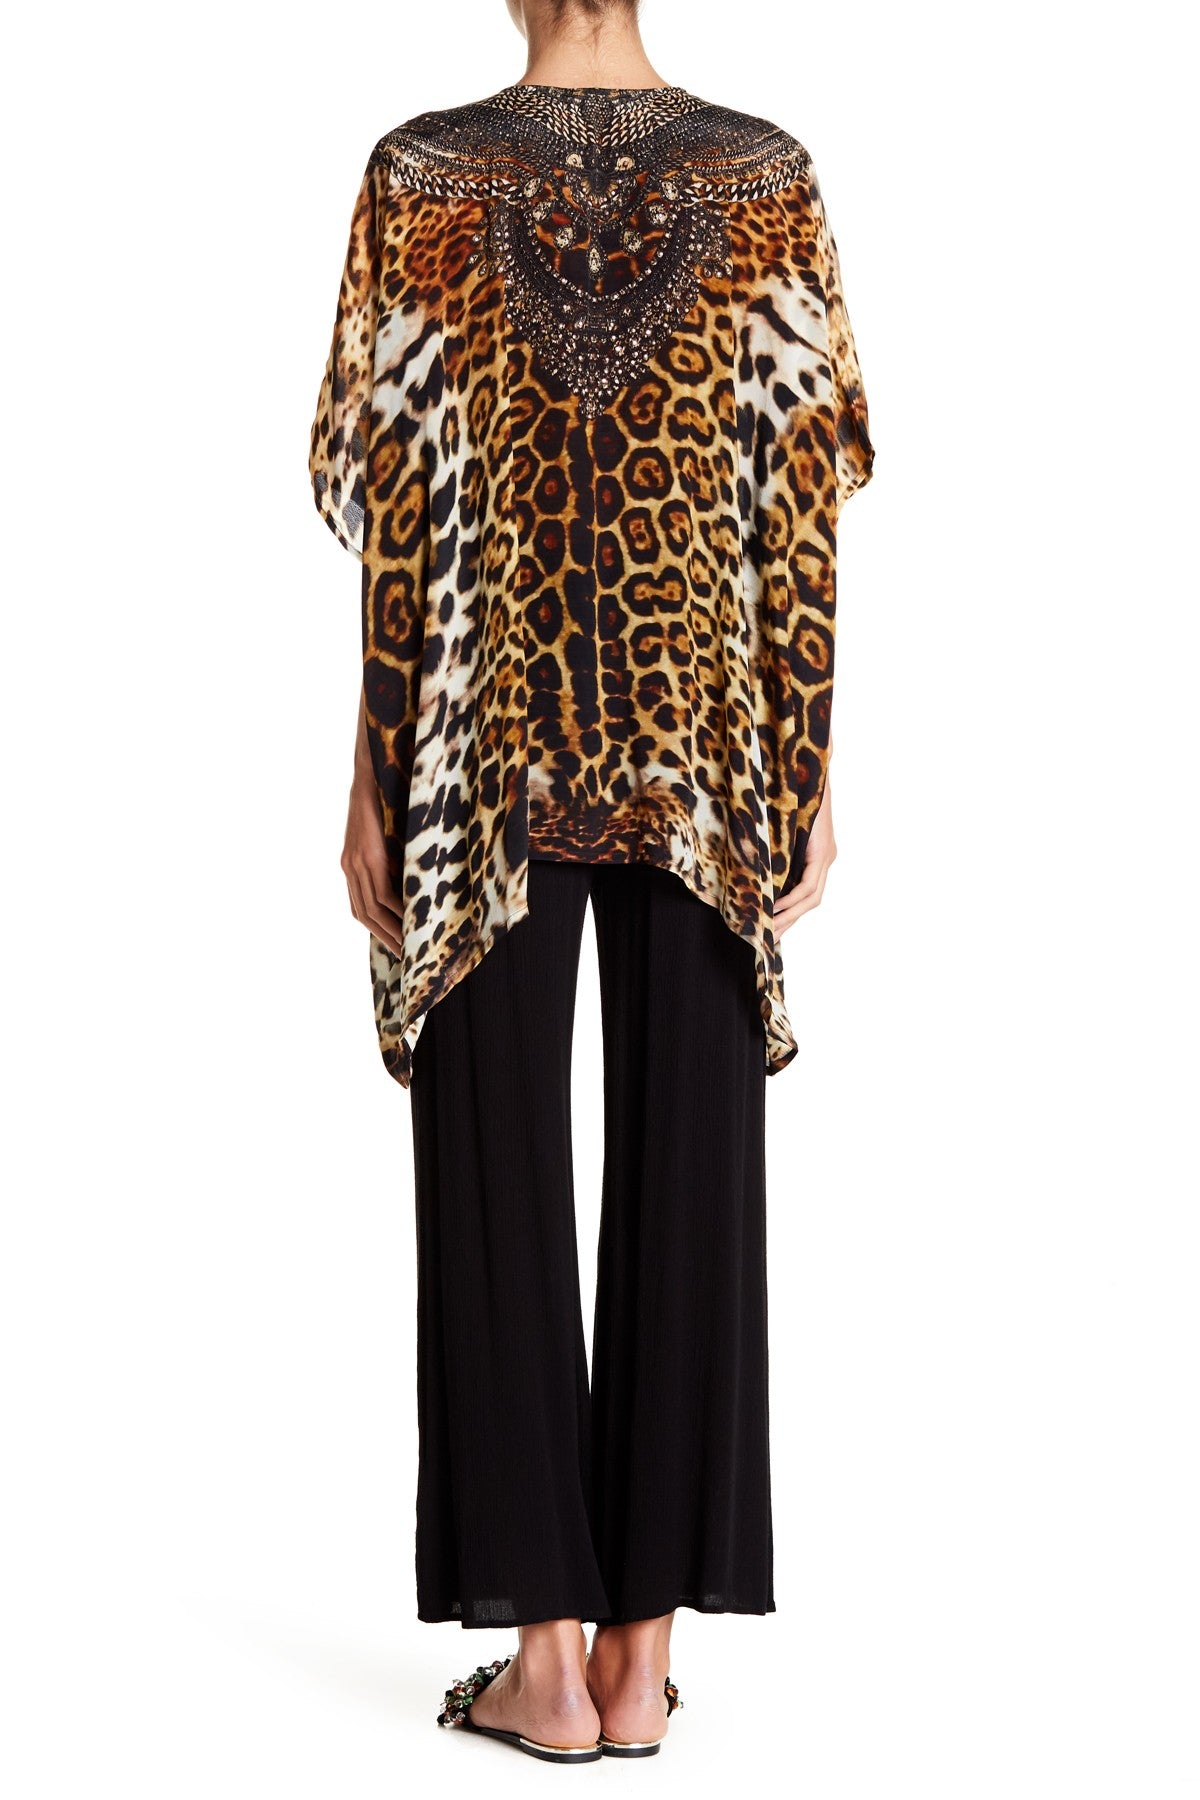 Animal print caftan tops